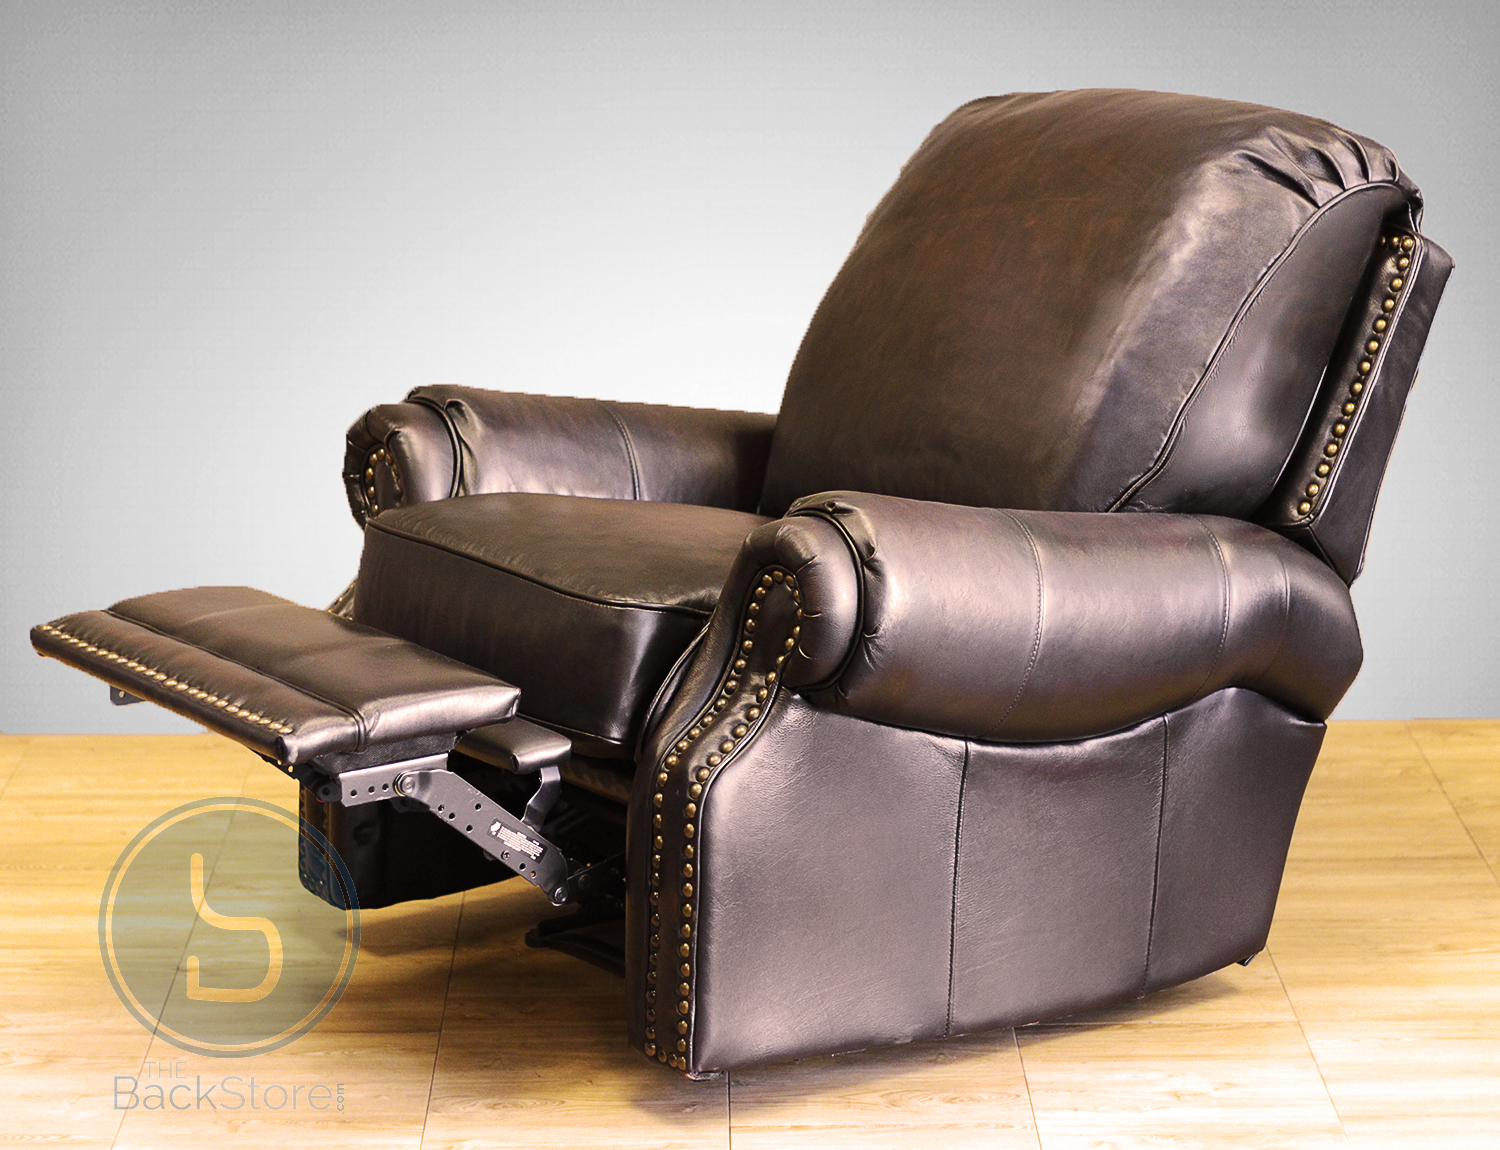 Barcalounger Premier Ii Recliner Chair Chaps Saddle Leather